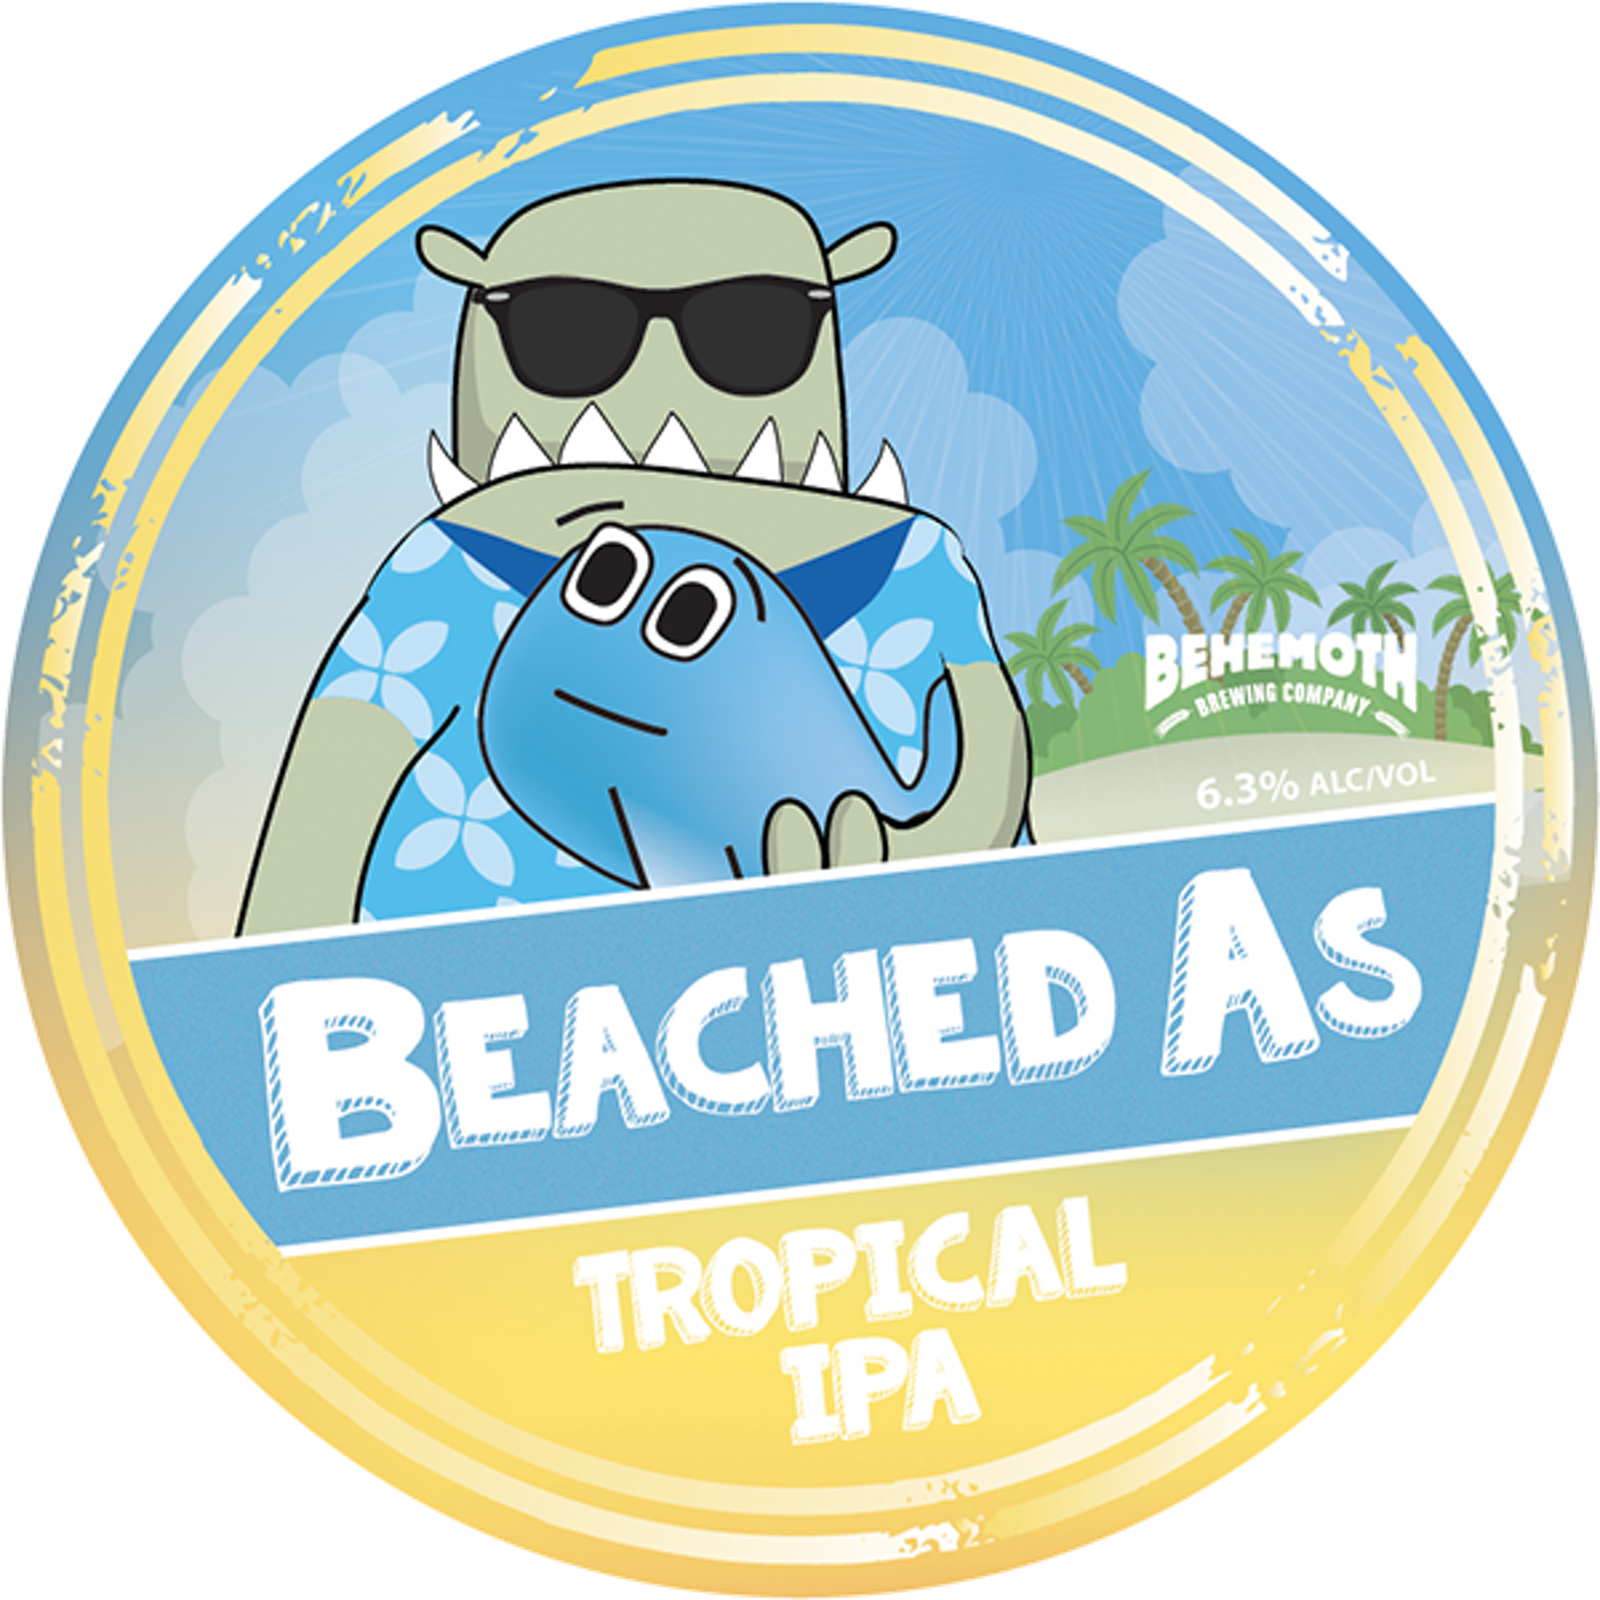 Beached As - Tropical IPA